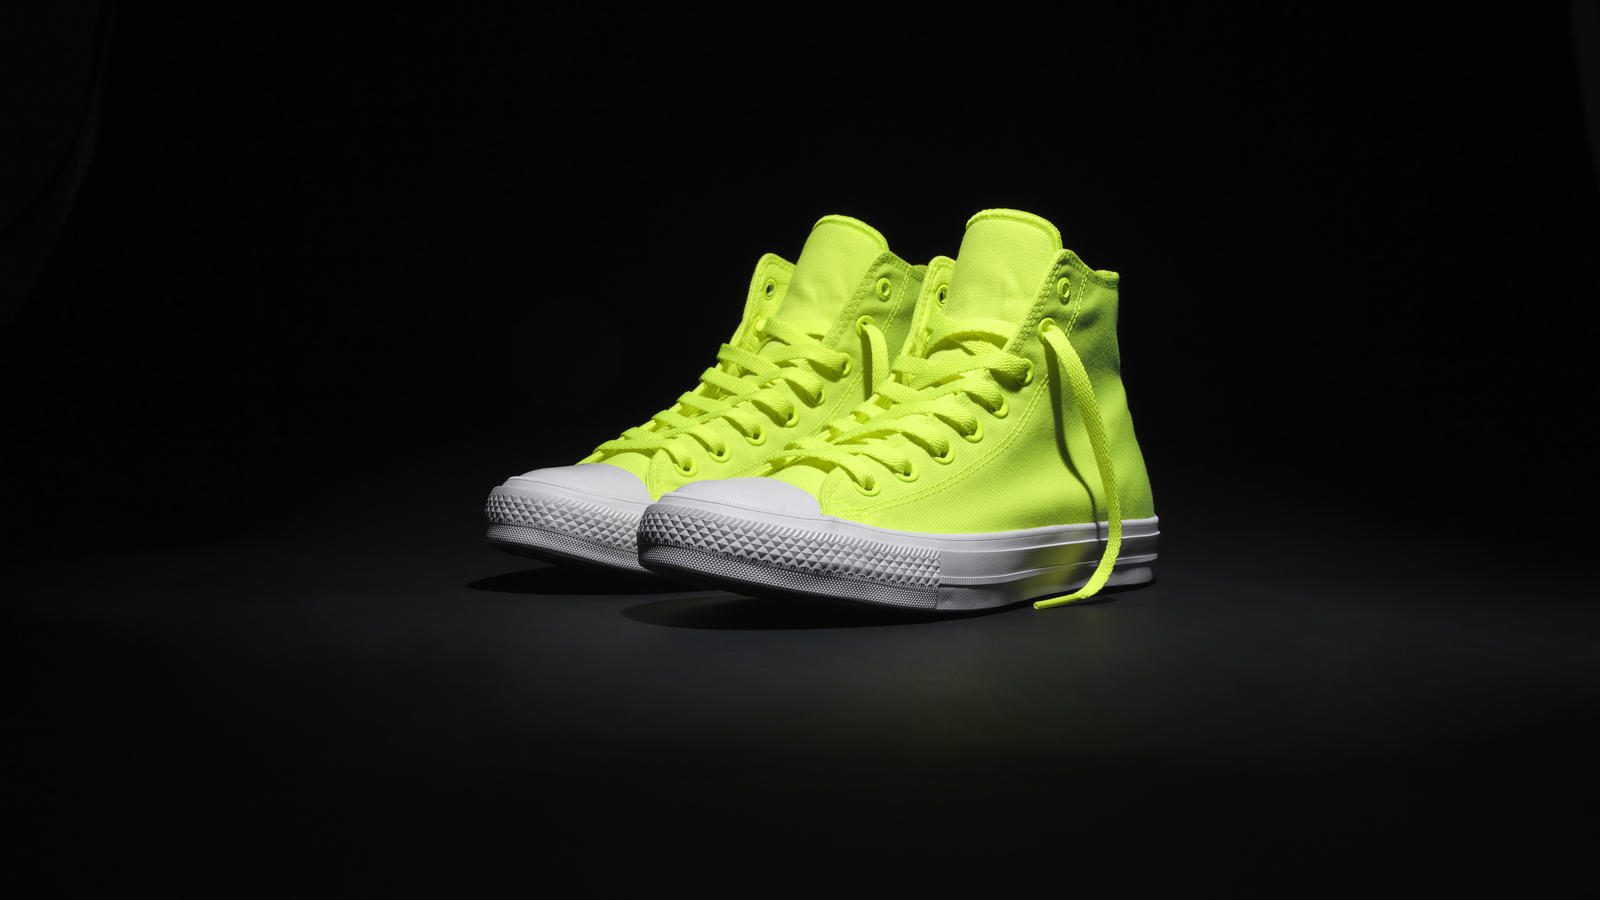 8bf5d5d8a828 CONVERSE CHUCK TAYLOR ALL STAR II SHOWS ITS TRUE COLORS WITH LIMITED ...